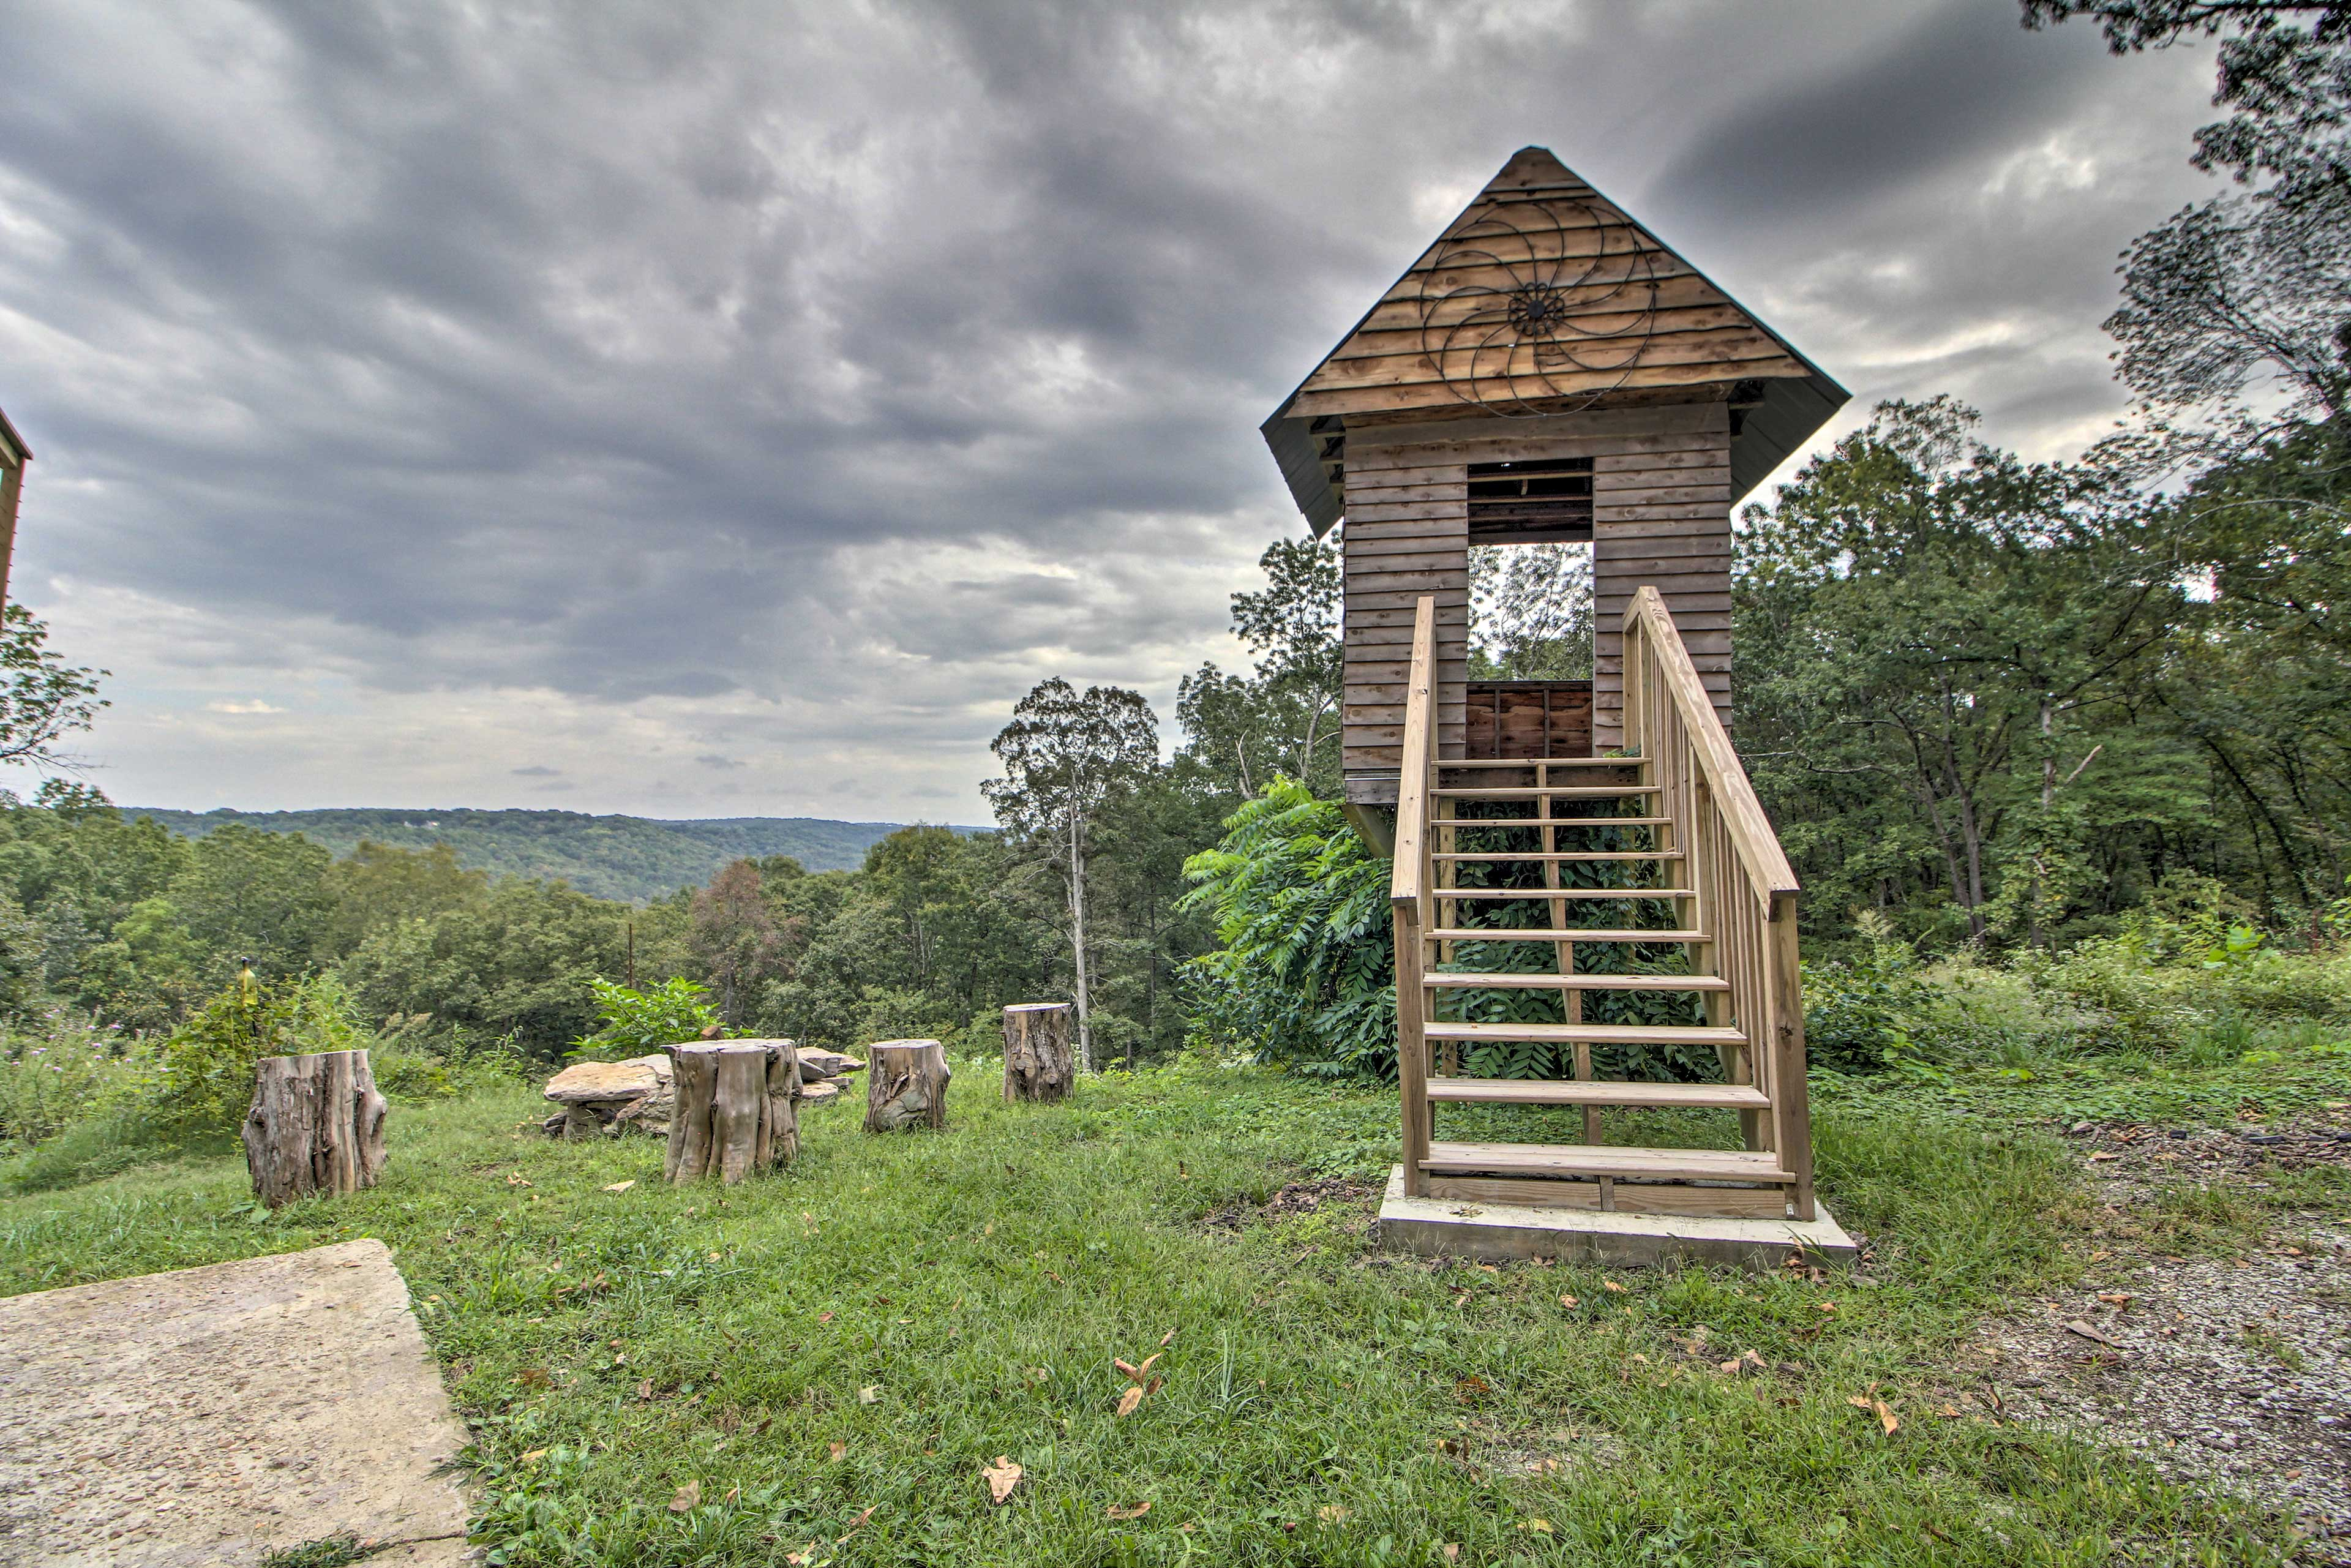 Explore the tree house on the property.